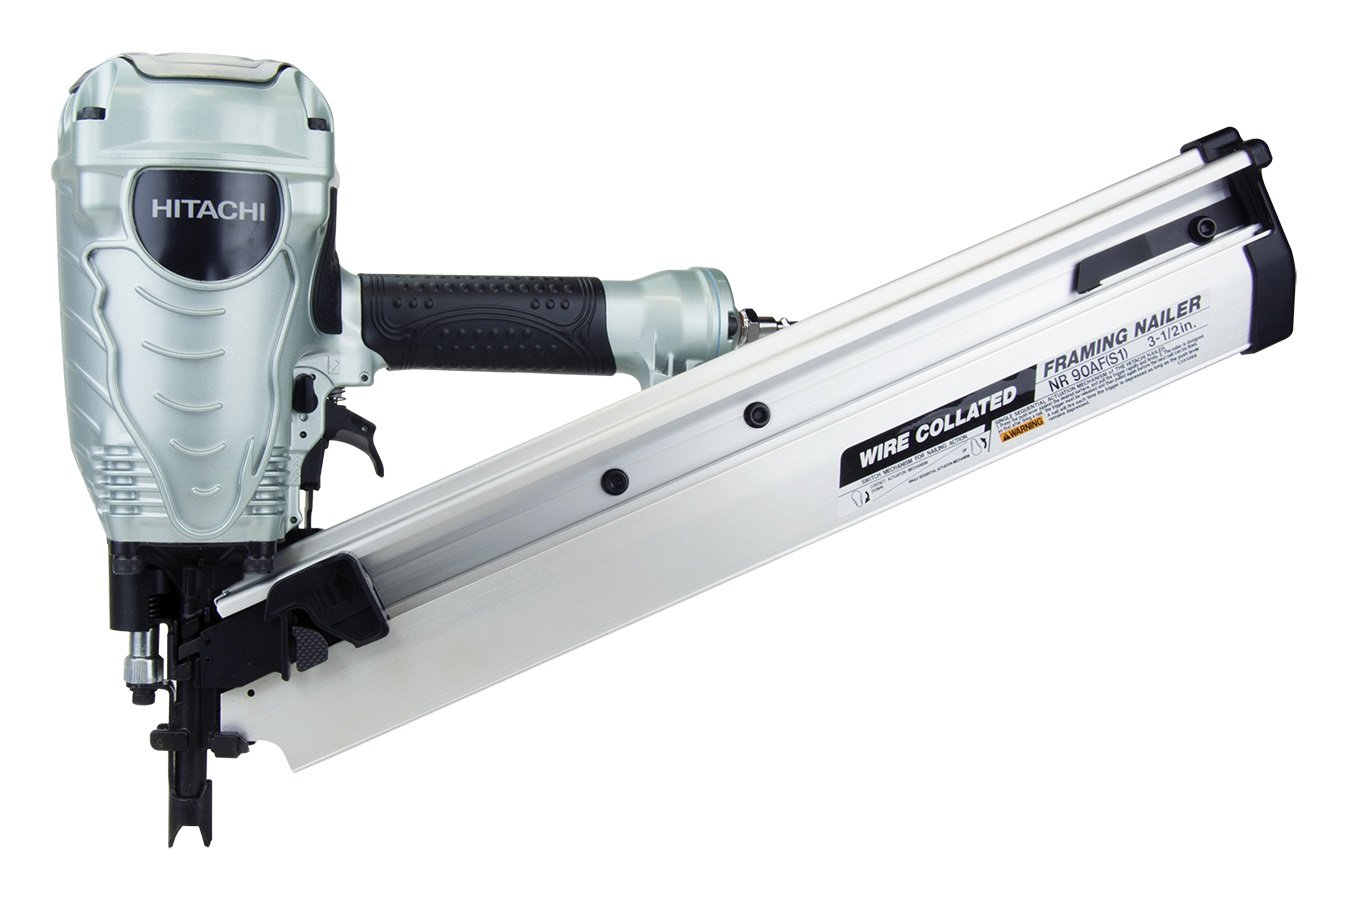 Hitachi NR90AFS1 2-Inch to 3-1/2-Inch Wire Weld Collated Framing ...